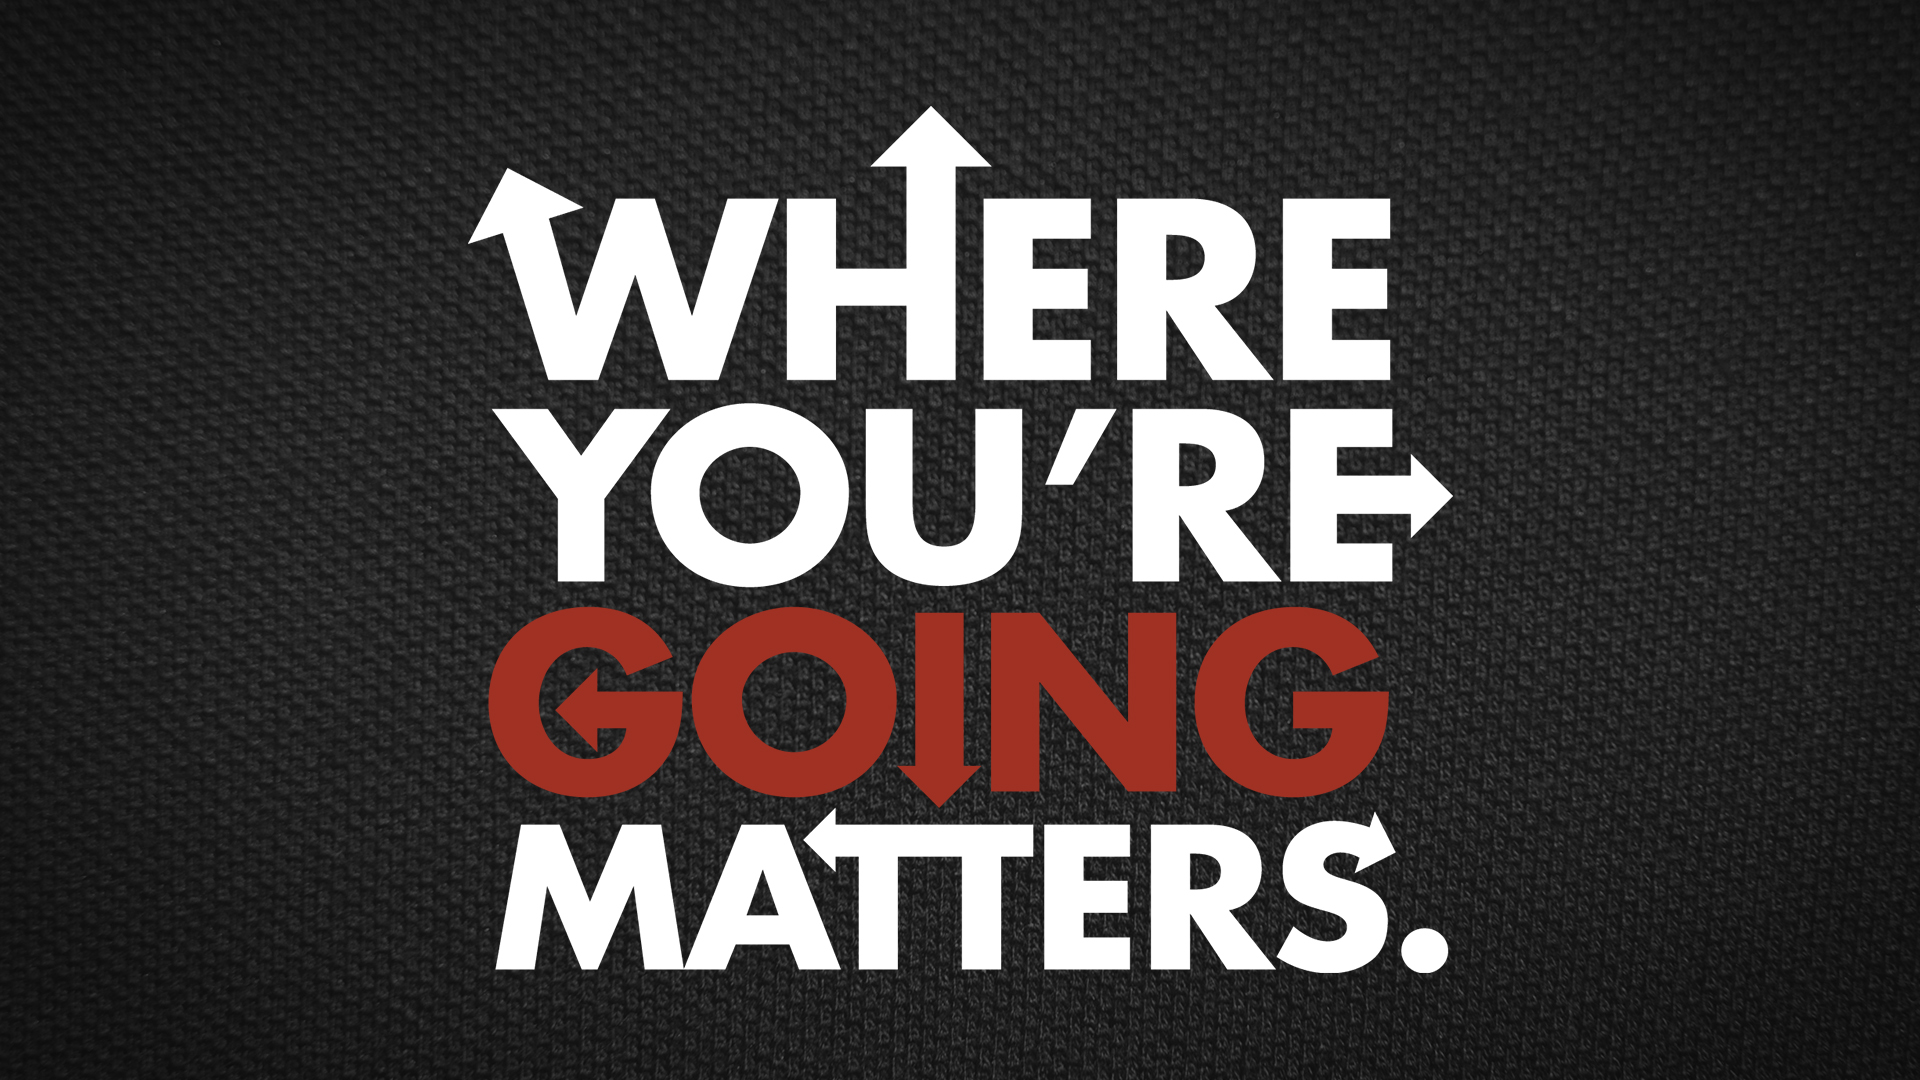 Where you're going matters!